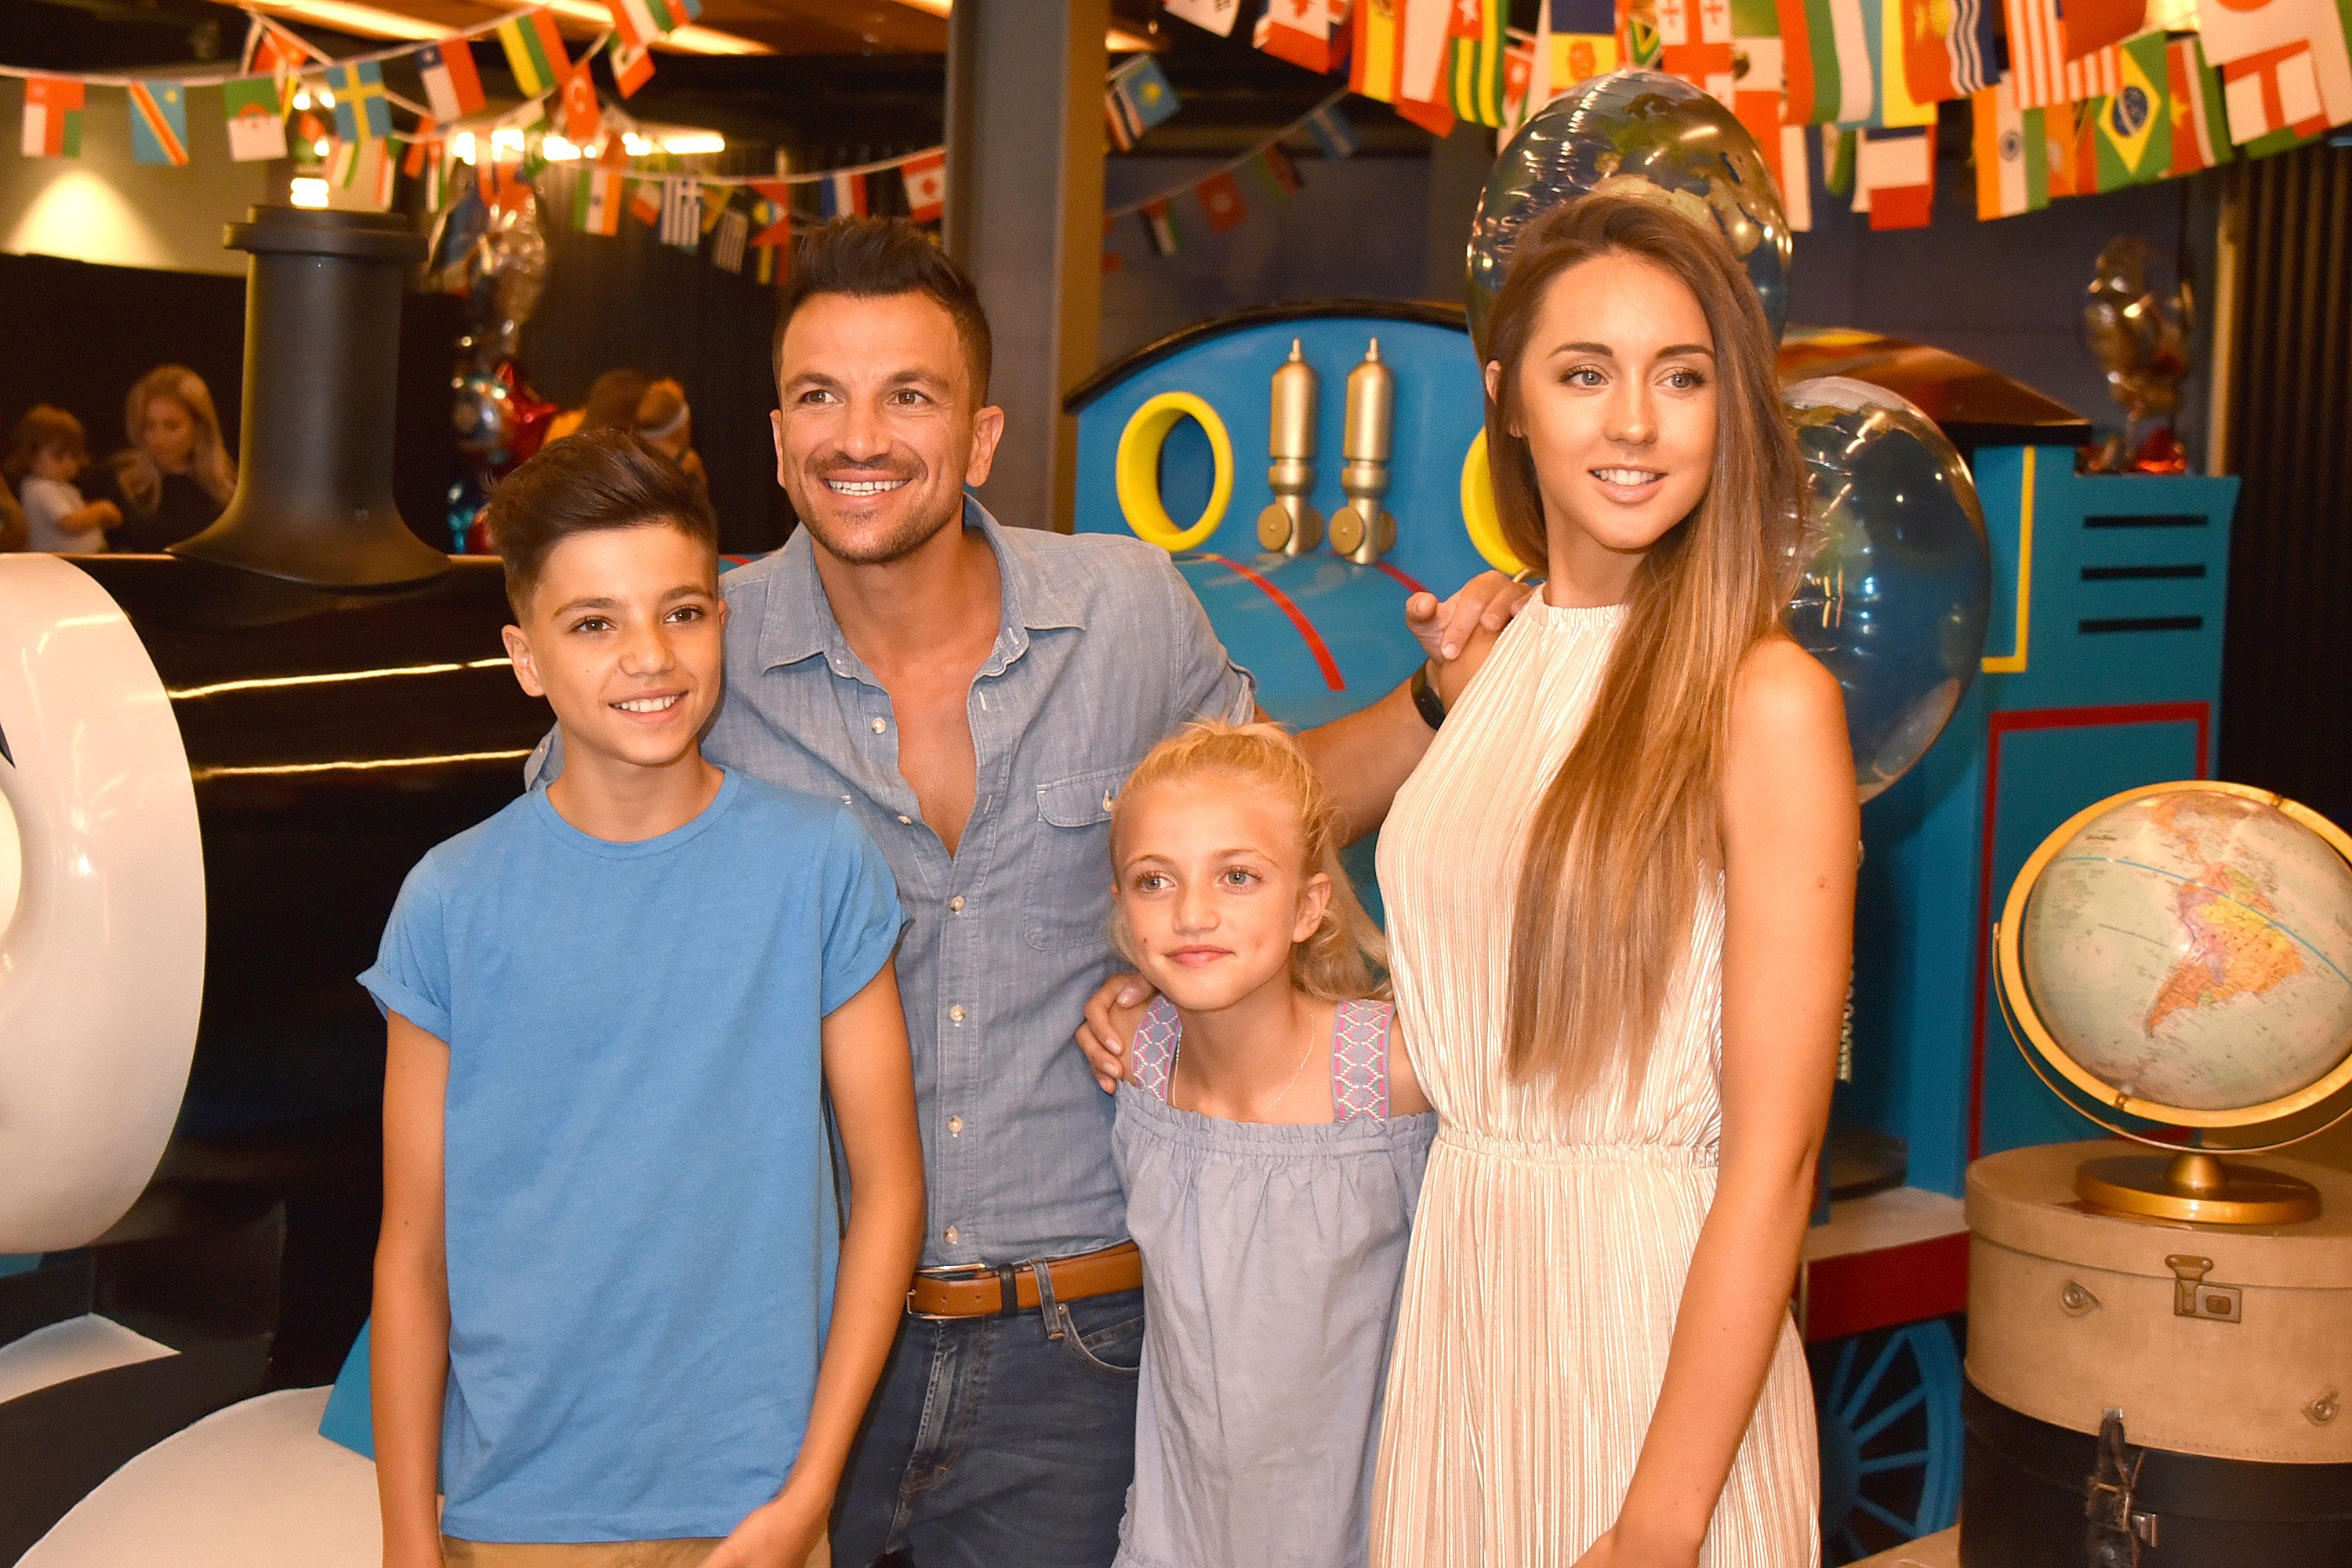 Peter Andre Wants To Protect His Children Junior And Princess From Negativity